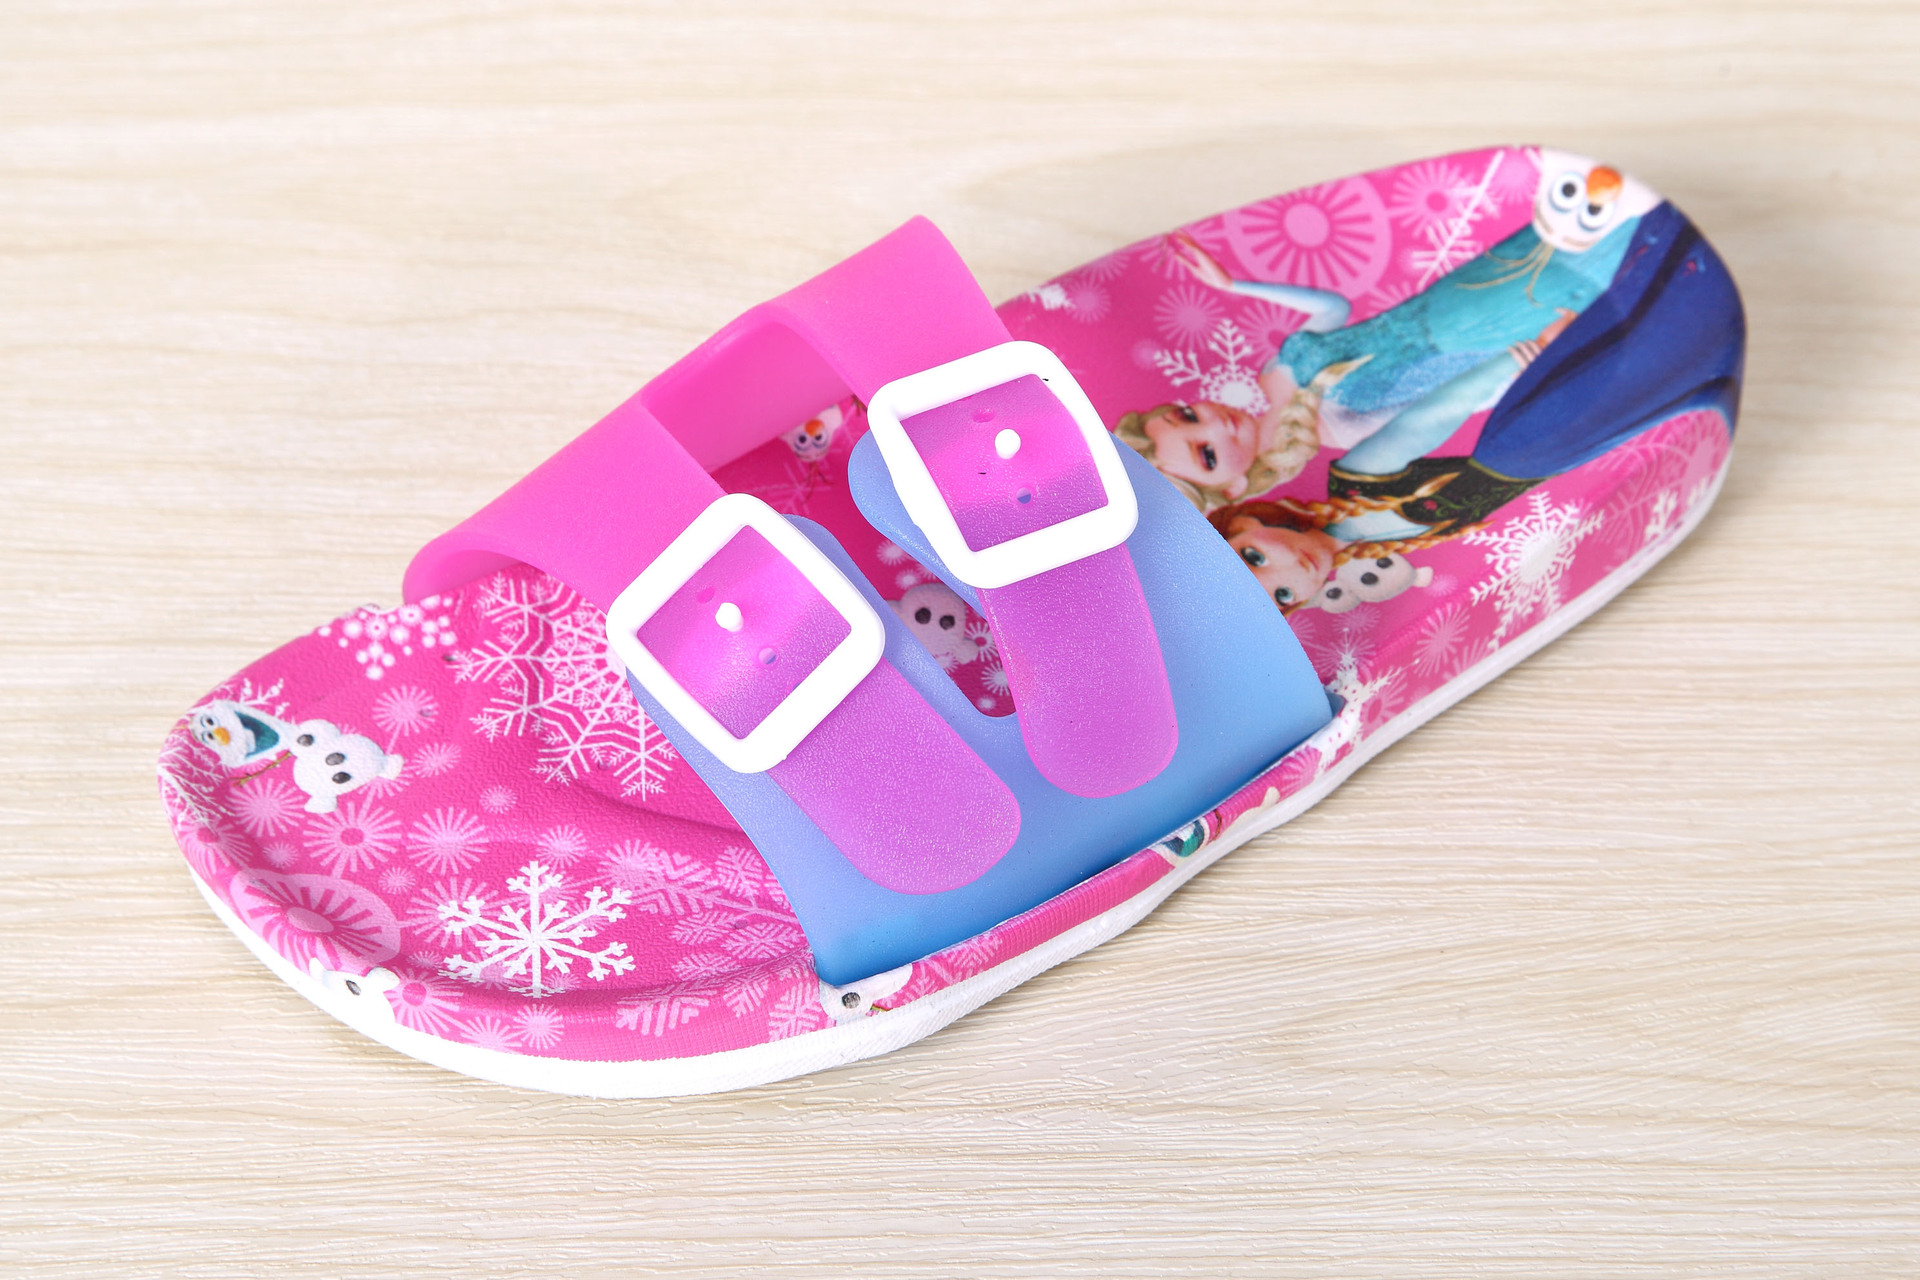 2016 fashion cartoon girls sandal cute beach shoes kids bathroom indoor soft bottom slipper children's bath slippers(China (Mainland))